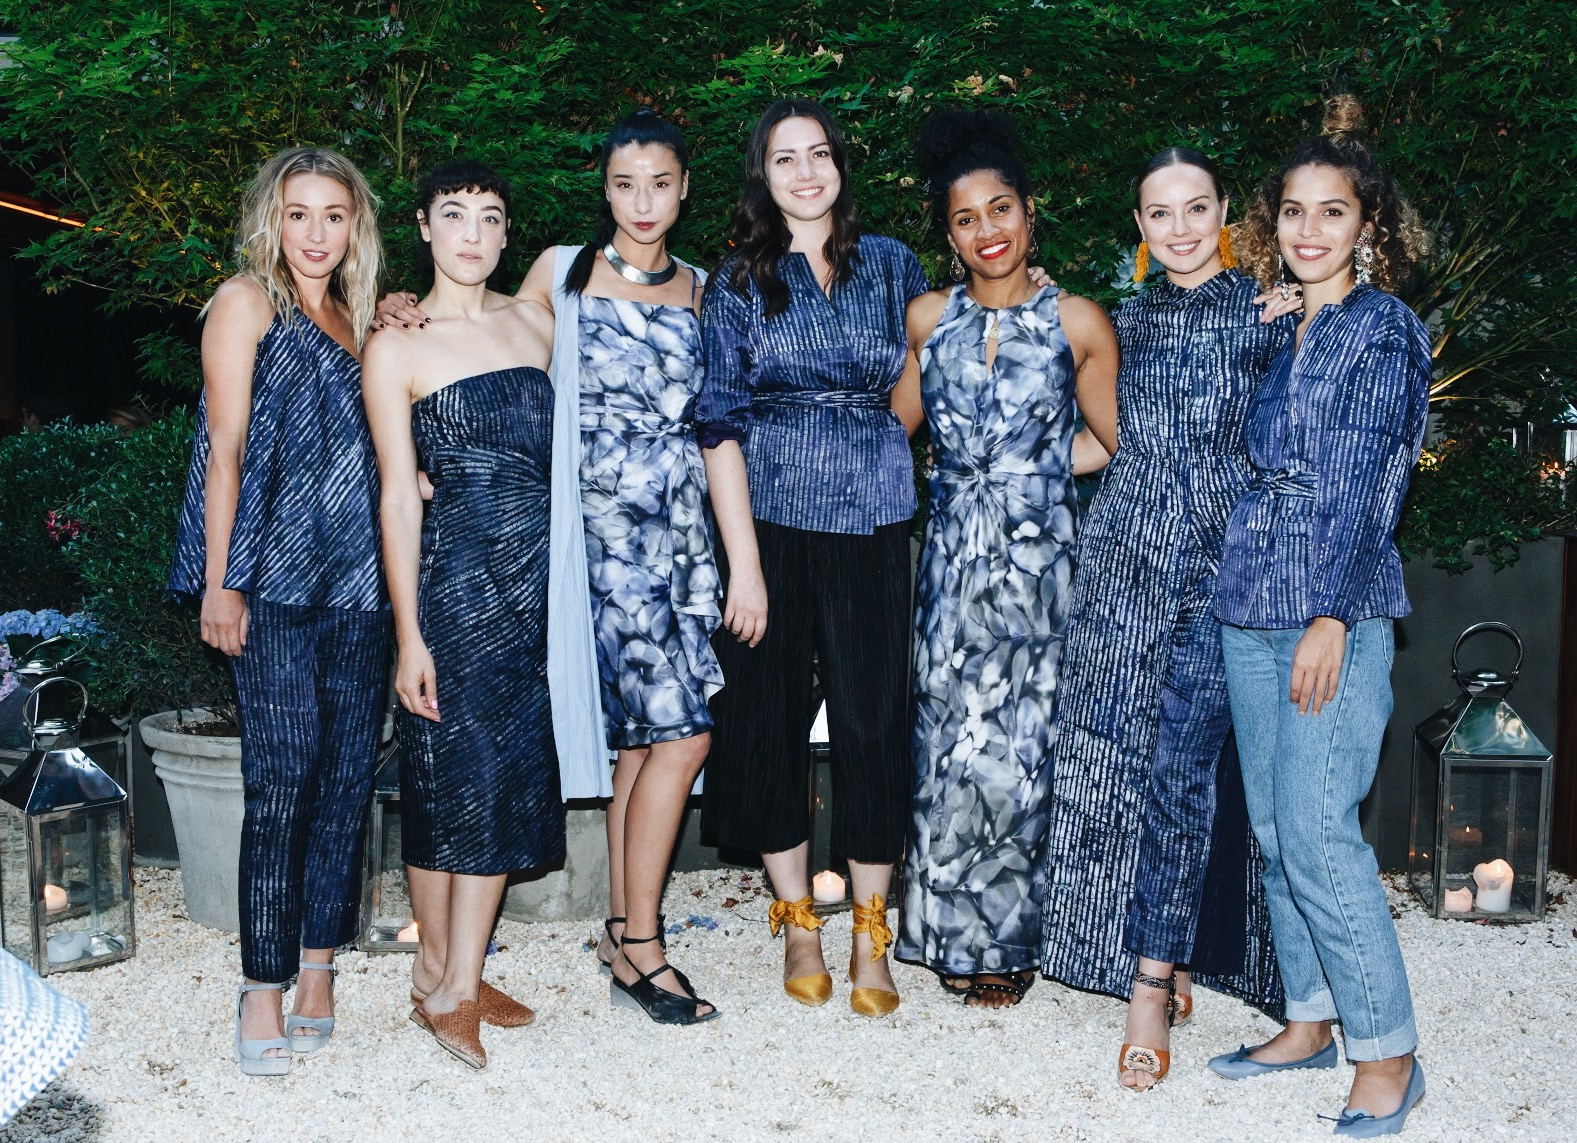 Left to right: Kate Greer, Mia Moretti, Lily Kwong, Liza Voloshin, De'ara Balenger, Kelly Framel, and Cleo Wade all wearing the new Piece & Co. x Banana Republic capsule collection.